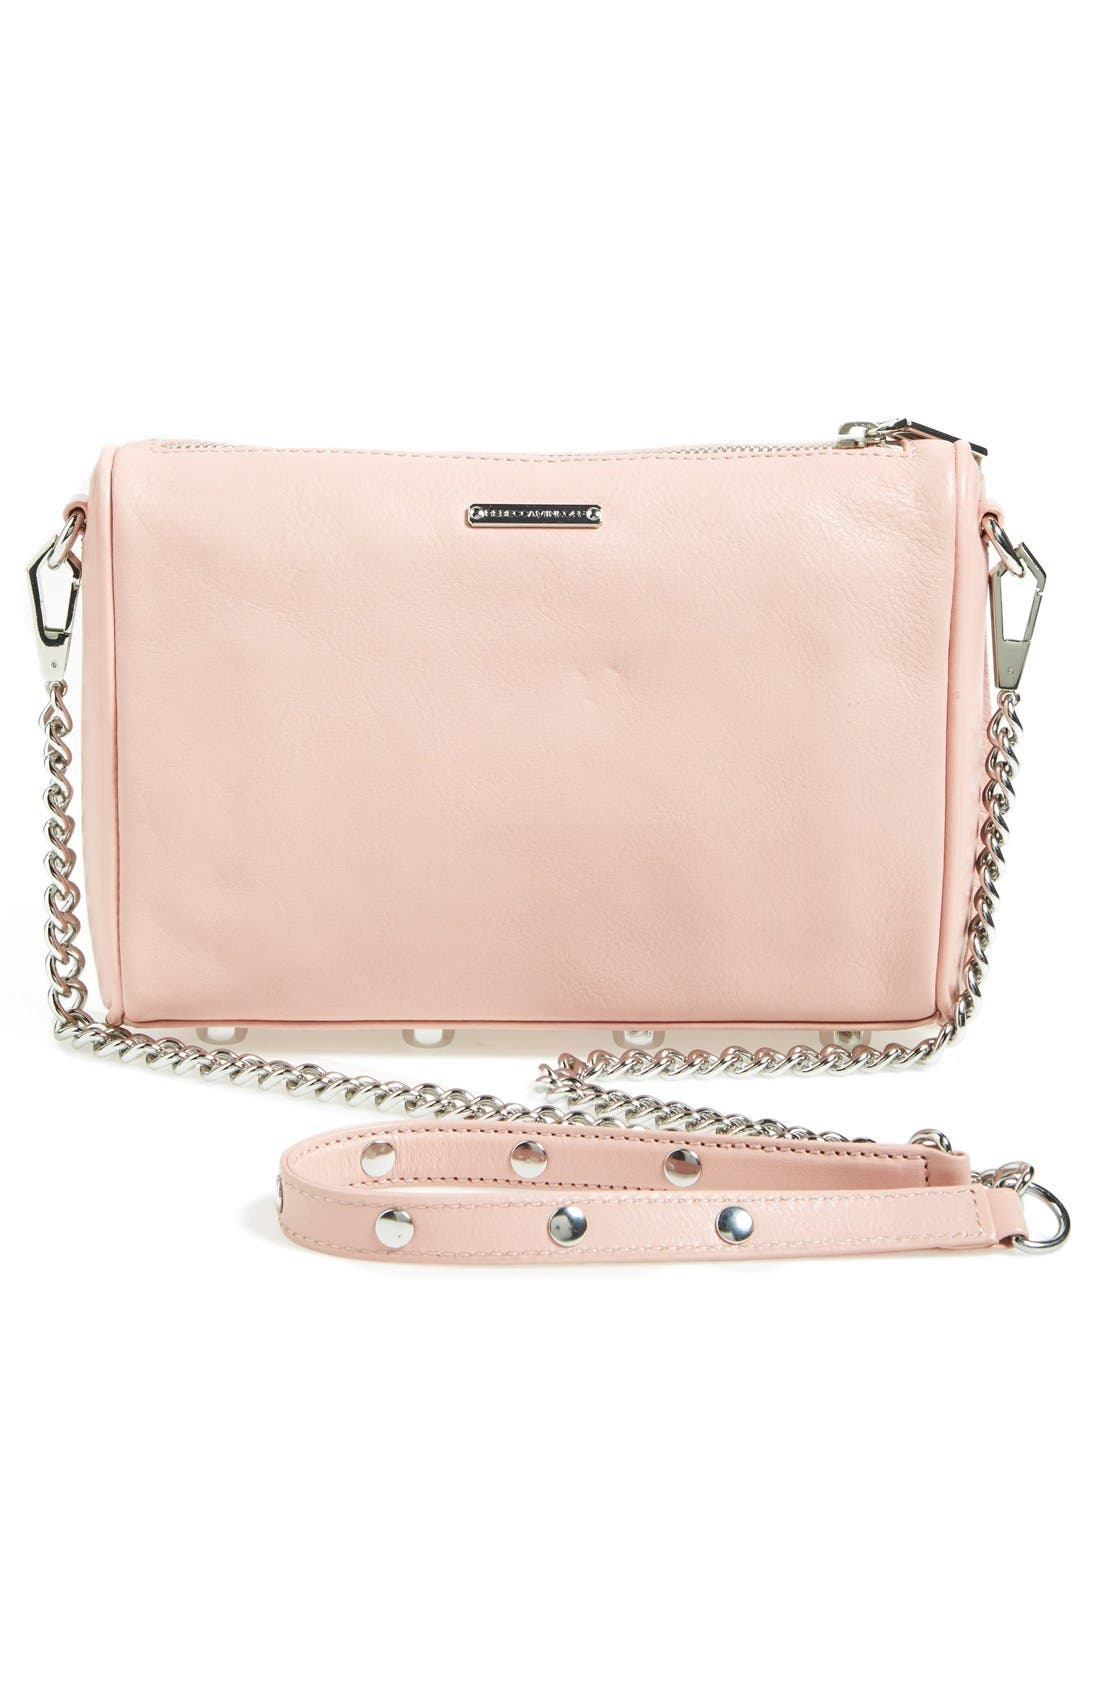 Alternate Image 3  - Rebecca Minkoff 'Mini 5 Zip' Convertible Crossbody Bag